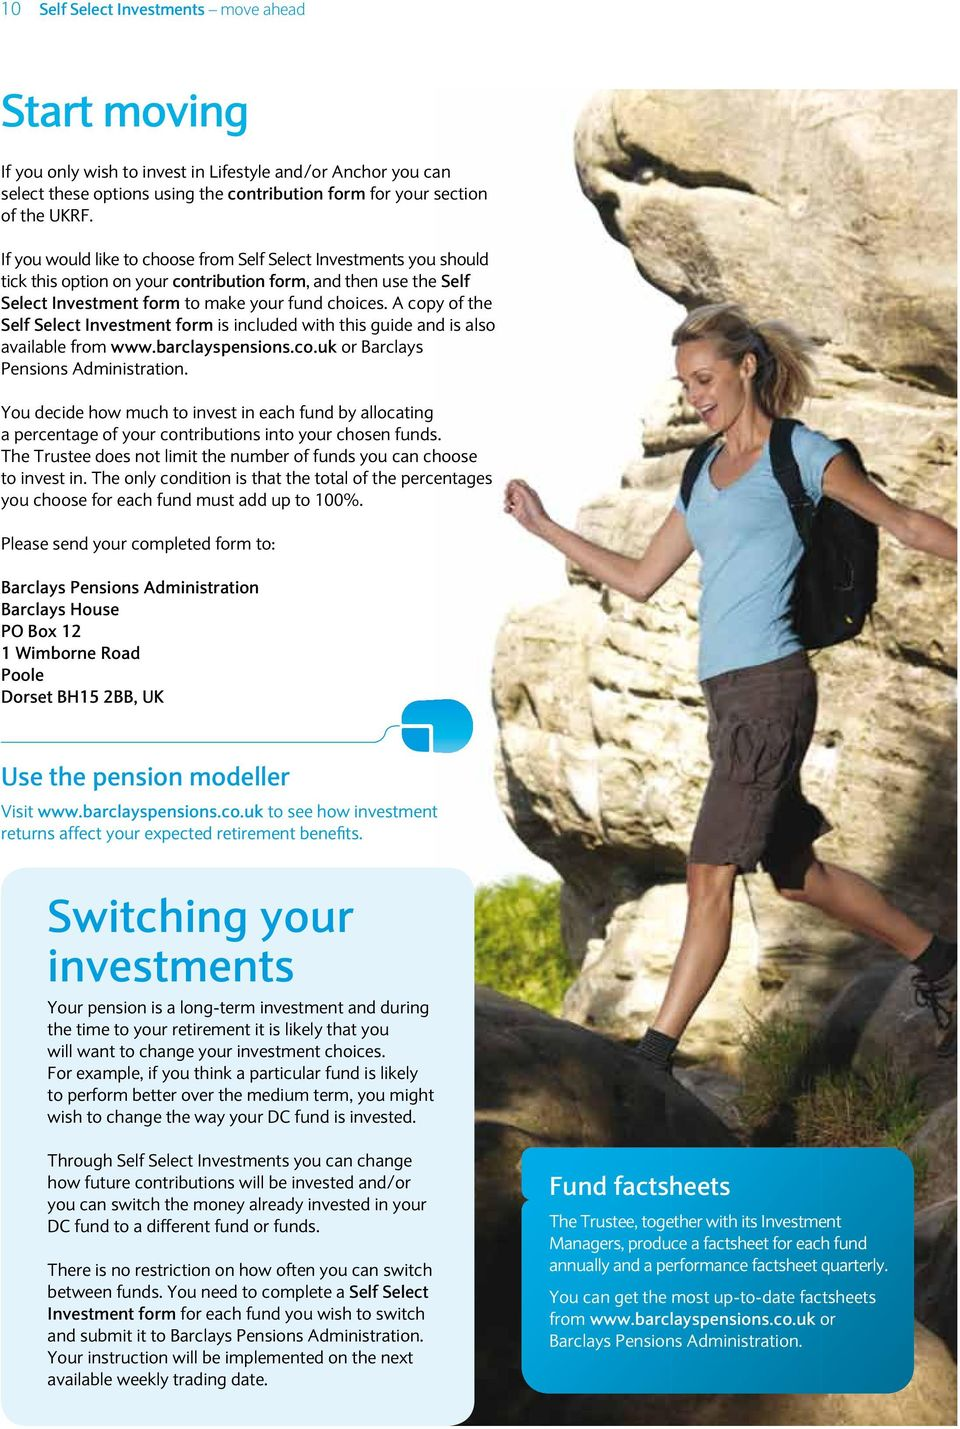 A copy of the Self Select Investment form is included with this guide and is also available from www.barclayspensions.co.uk or Barclays Pensions Administration.